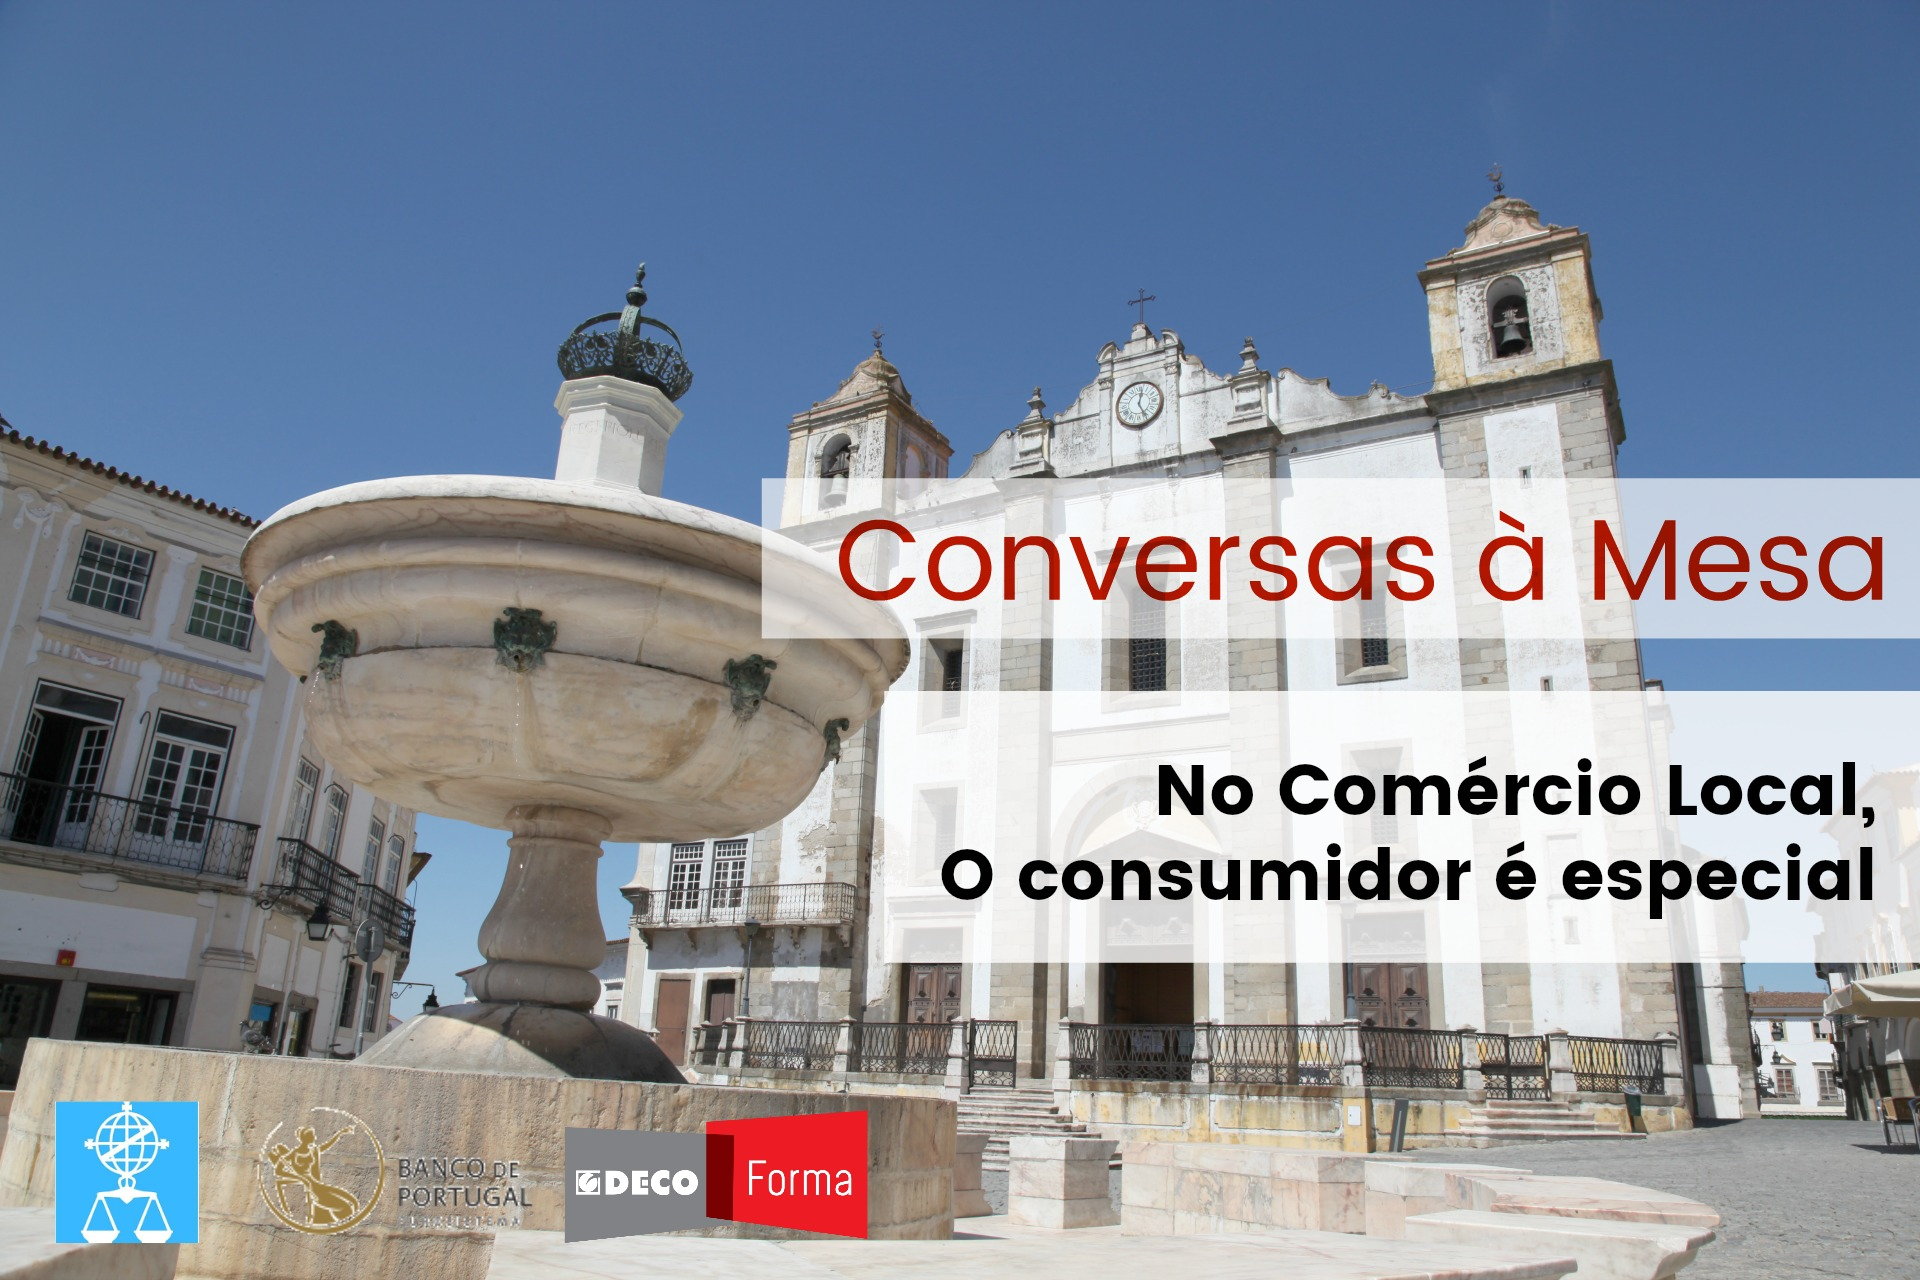 No comércio local, o consumidor é especial